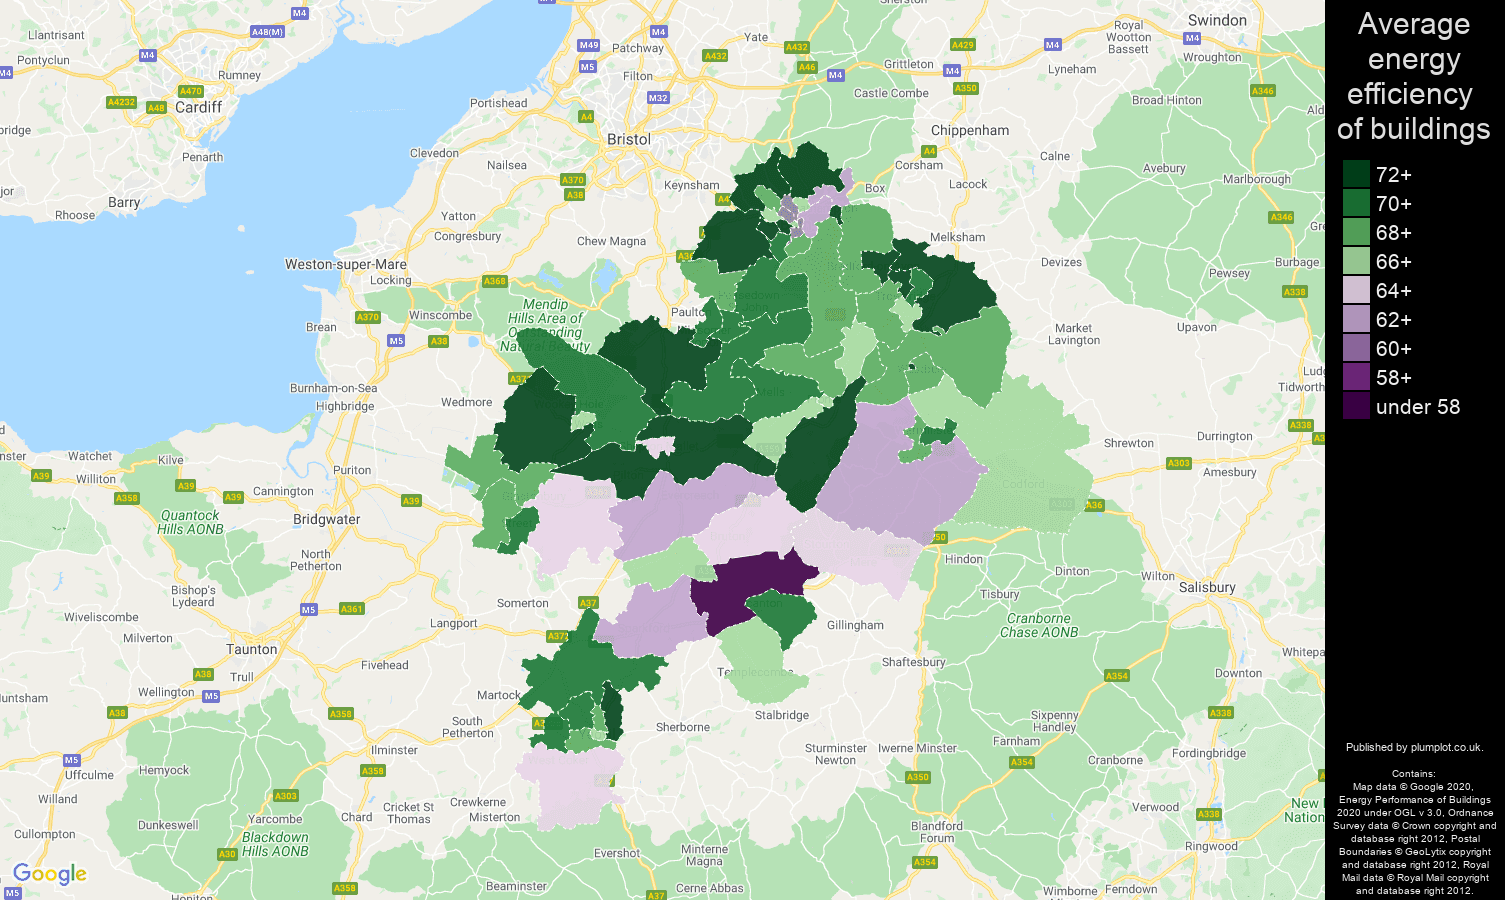 Bath map of energy efficiency of flats